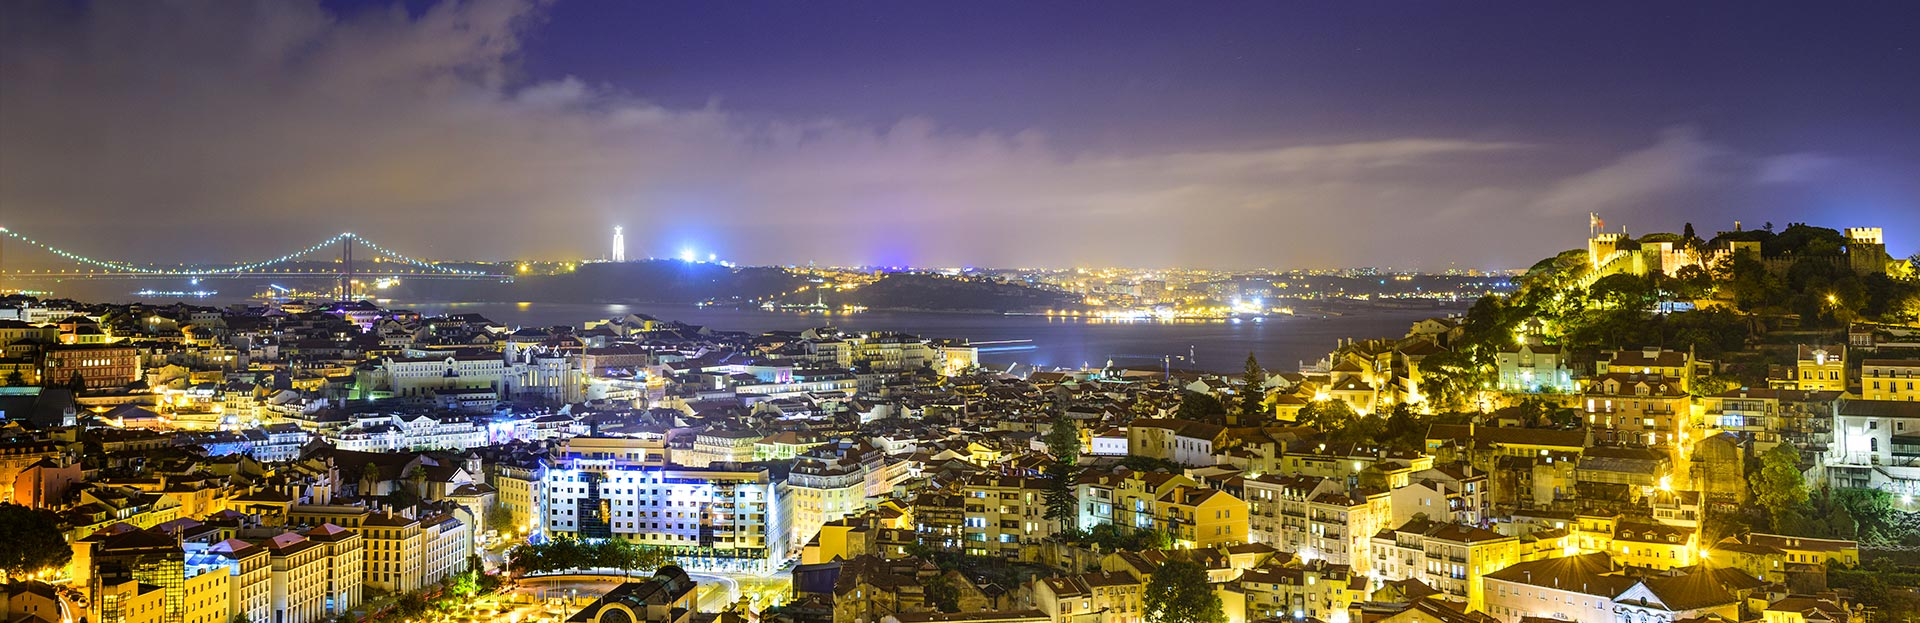 Lisbon Night Skyline